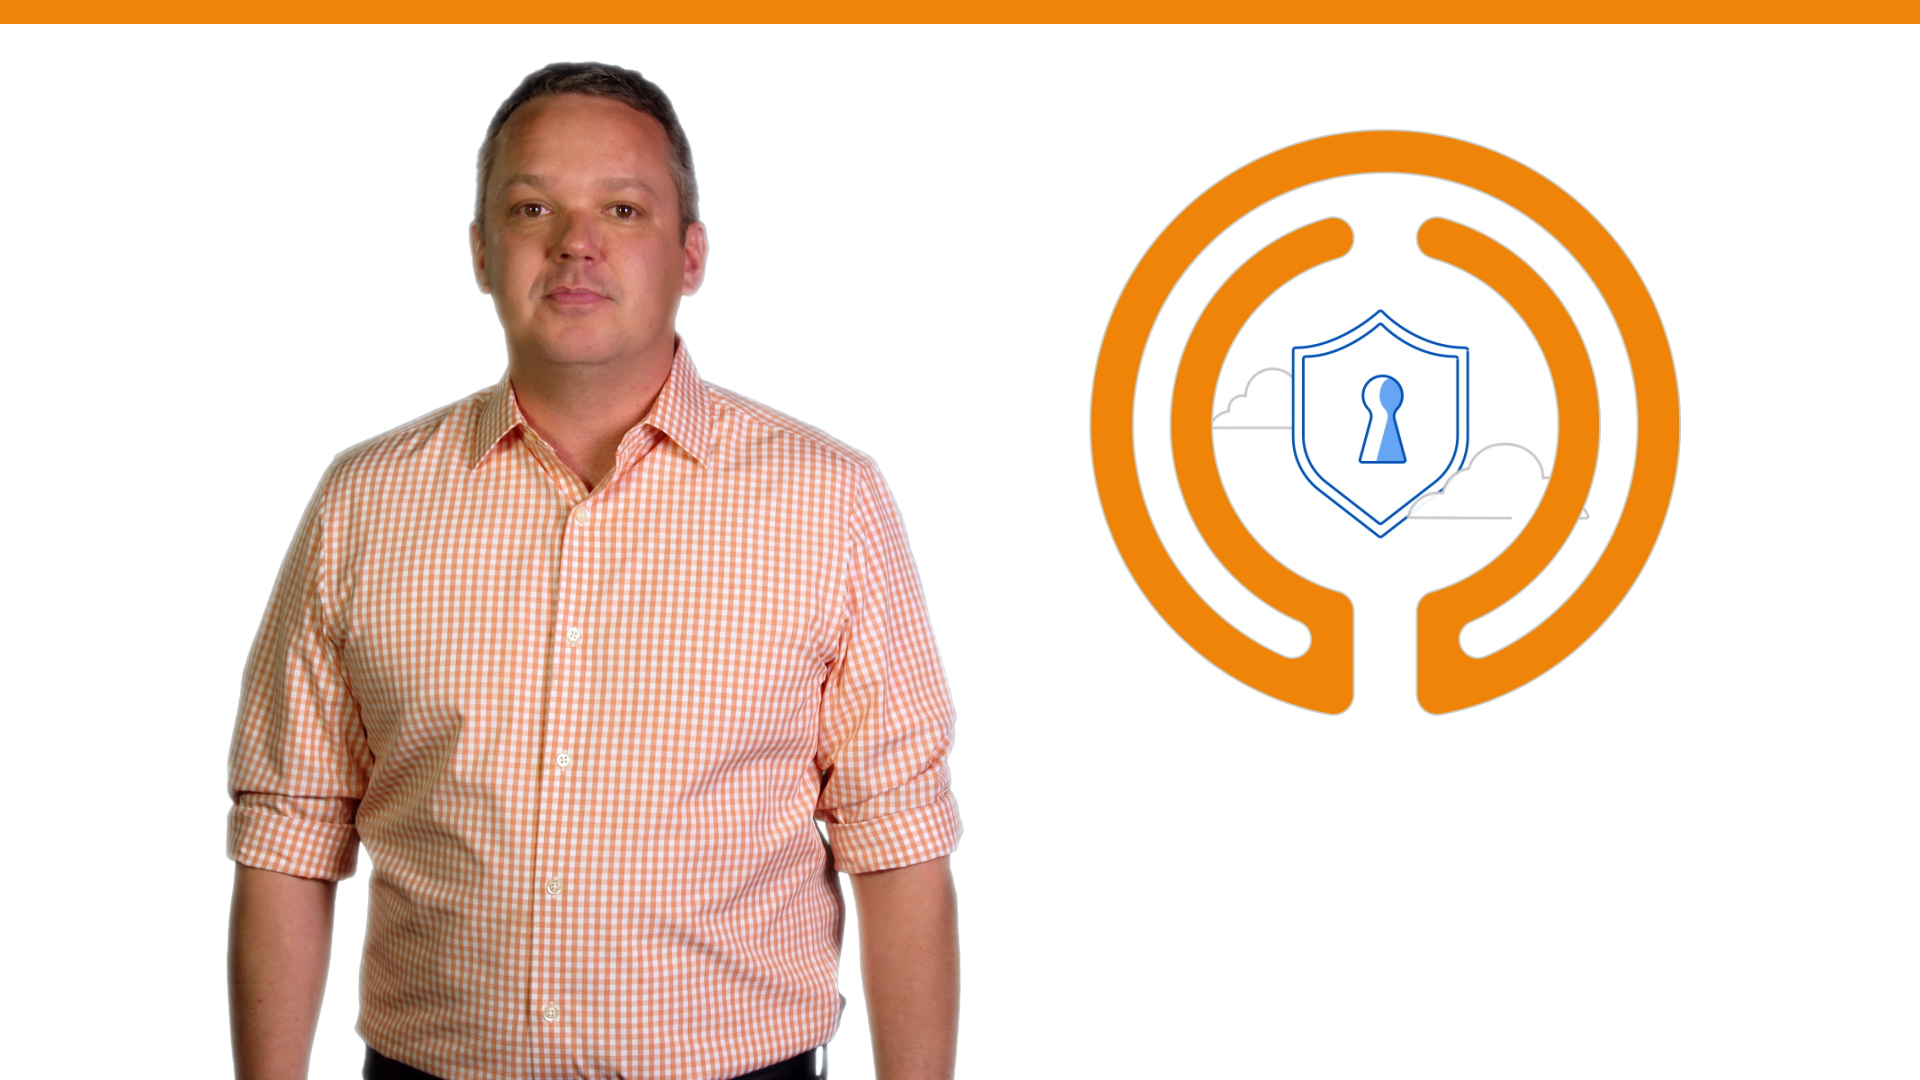 Workday's Chief Trust Officer Explains One Security Model - Workday Blog